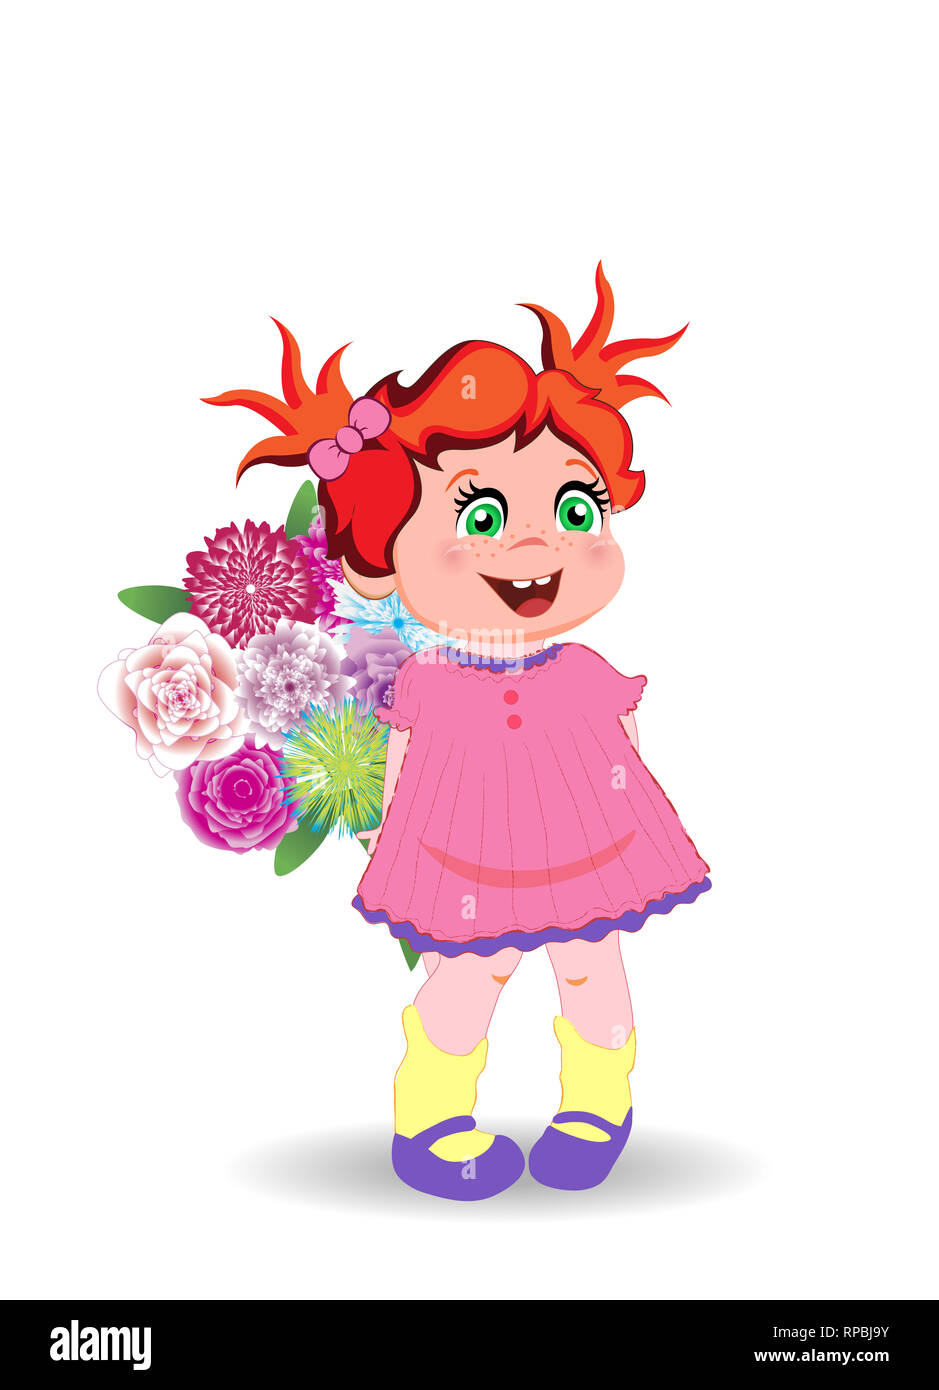 Illustration of Cute Little Girl in Pink Dress with Bunch of Flowers Isolated on White Background. Kawaii Baby Character Clip Art for Birthday Greetin - Stock Image